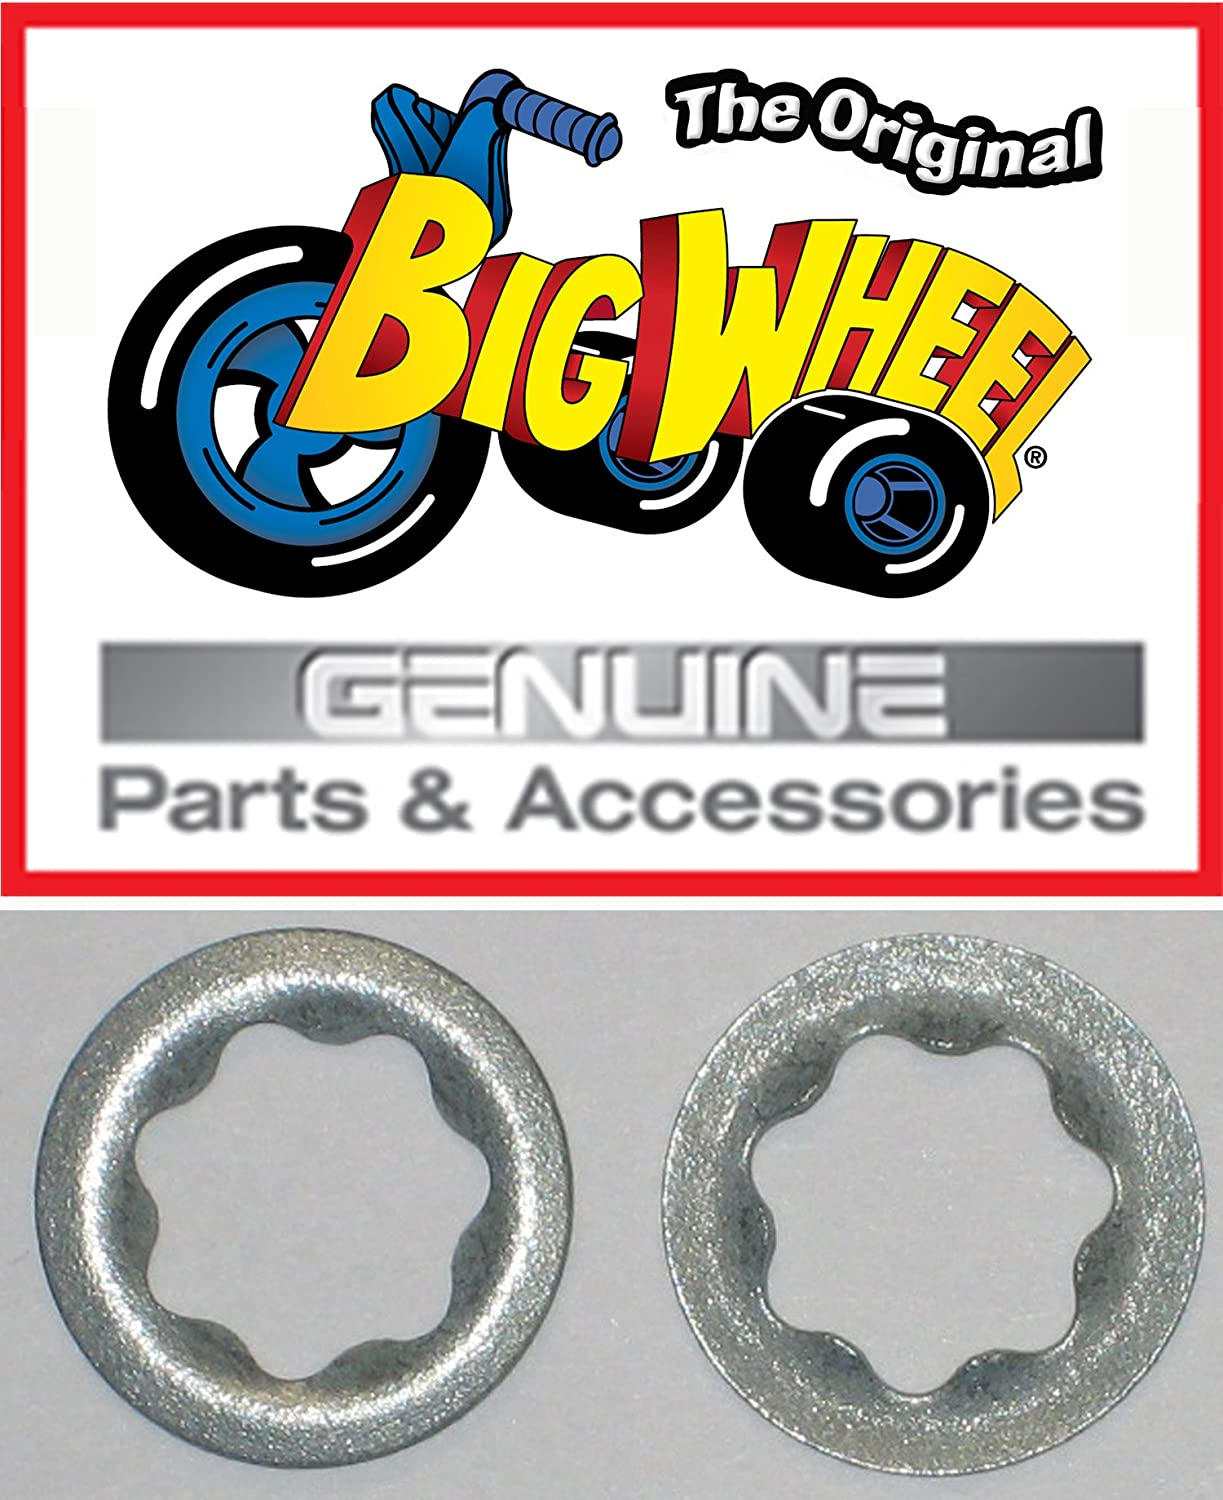 Replacement Parts The Original Classic Big Wheel Pair of Pedal WASHERS